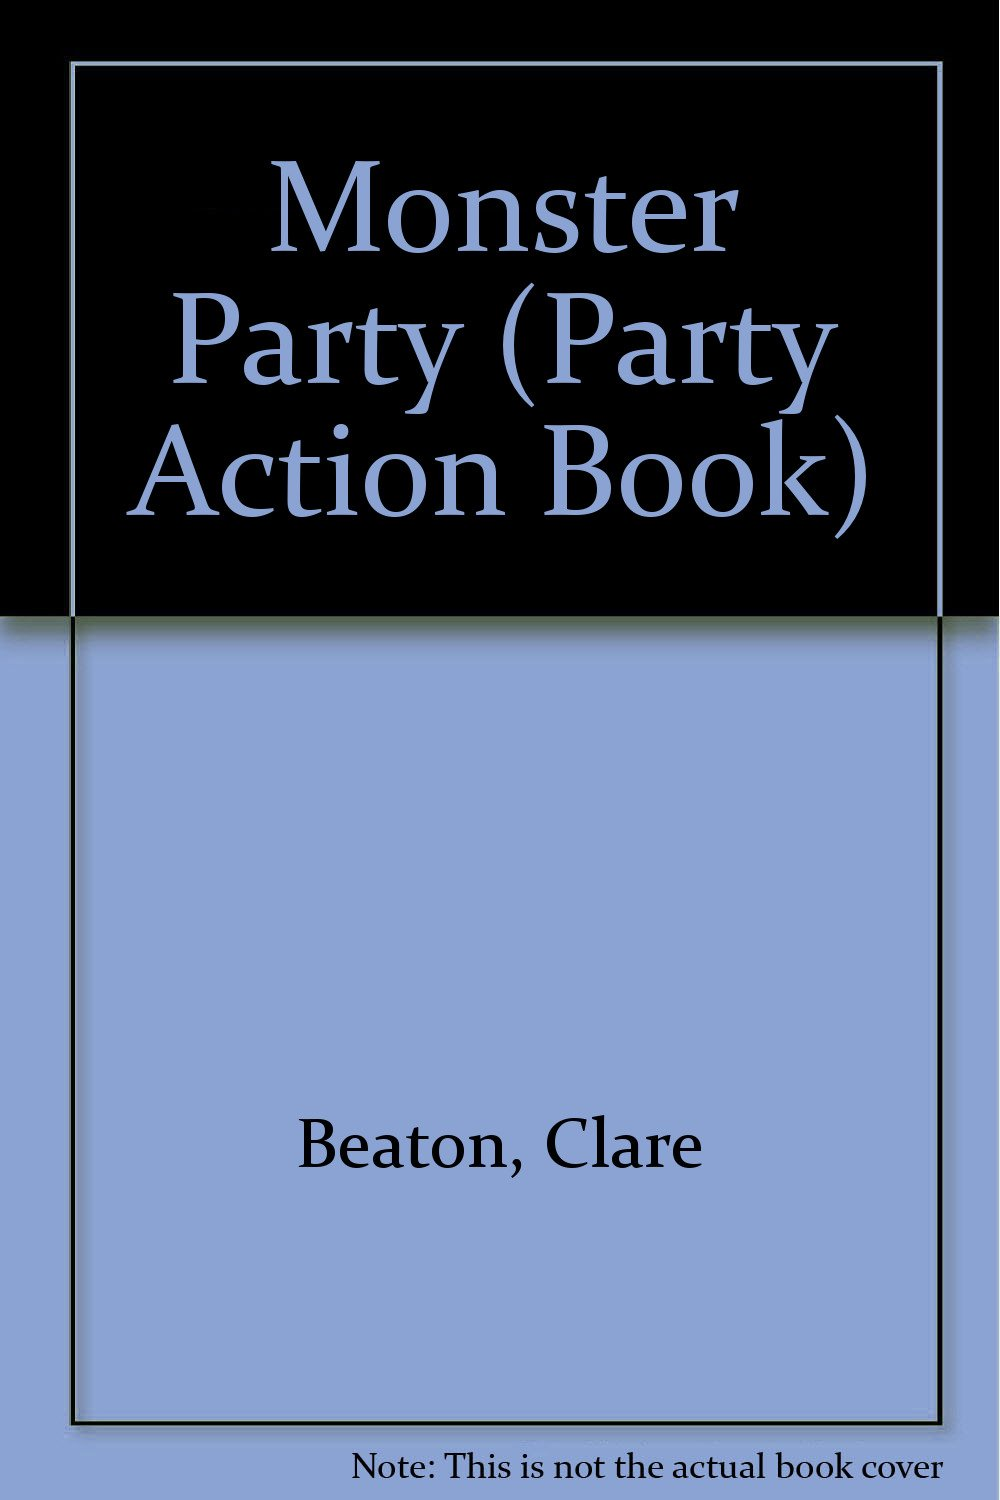 Action Book: Monster Party (Party Action Book)